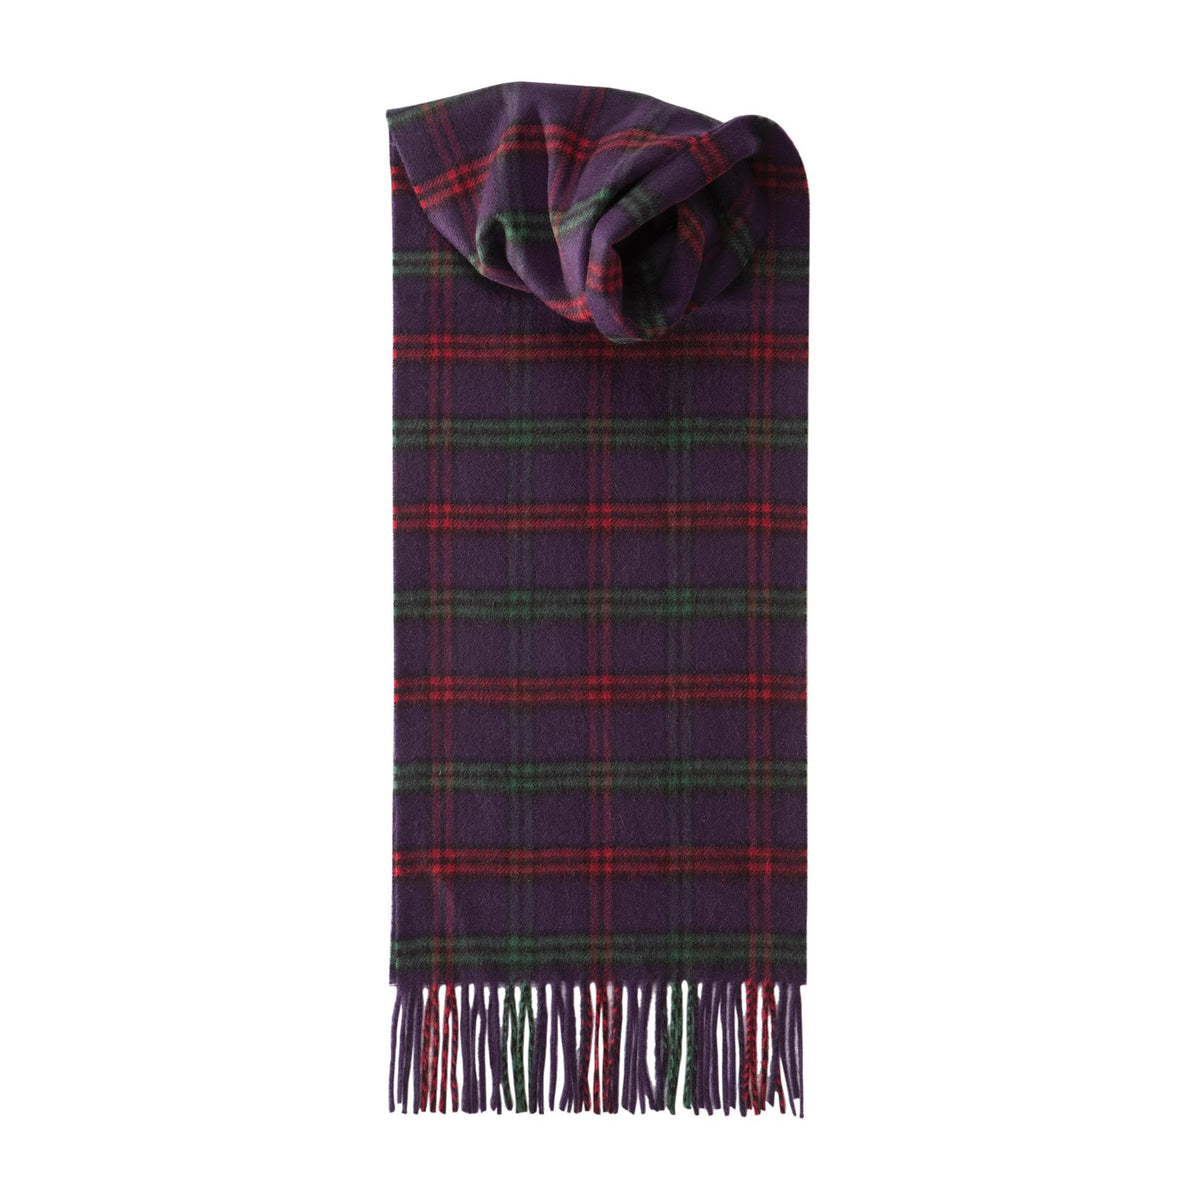 Johnsons of Elgin | Montgomerie Tartan Check Cashmere Scarf | buy at The Cashmere Choice | London